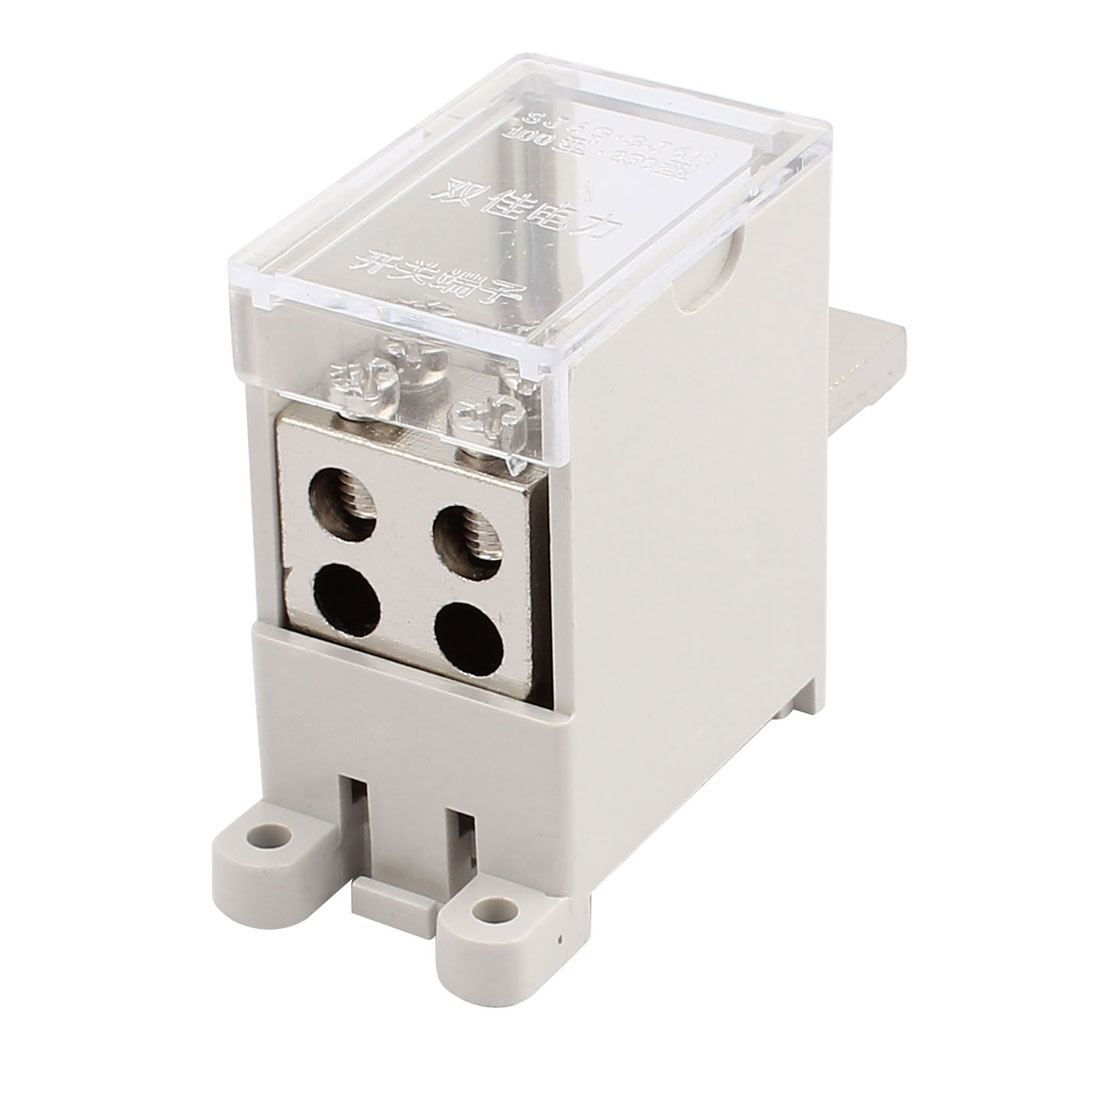 250-Type Wire Terminal Block 1 Inlet 4 Outlet for Miniature Circuit Breakers